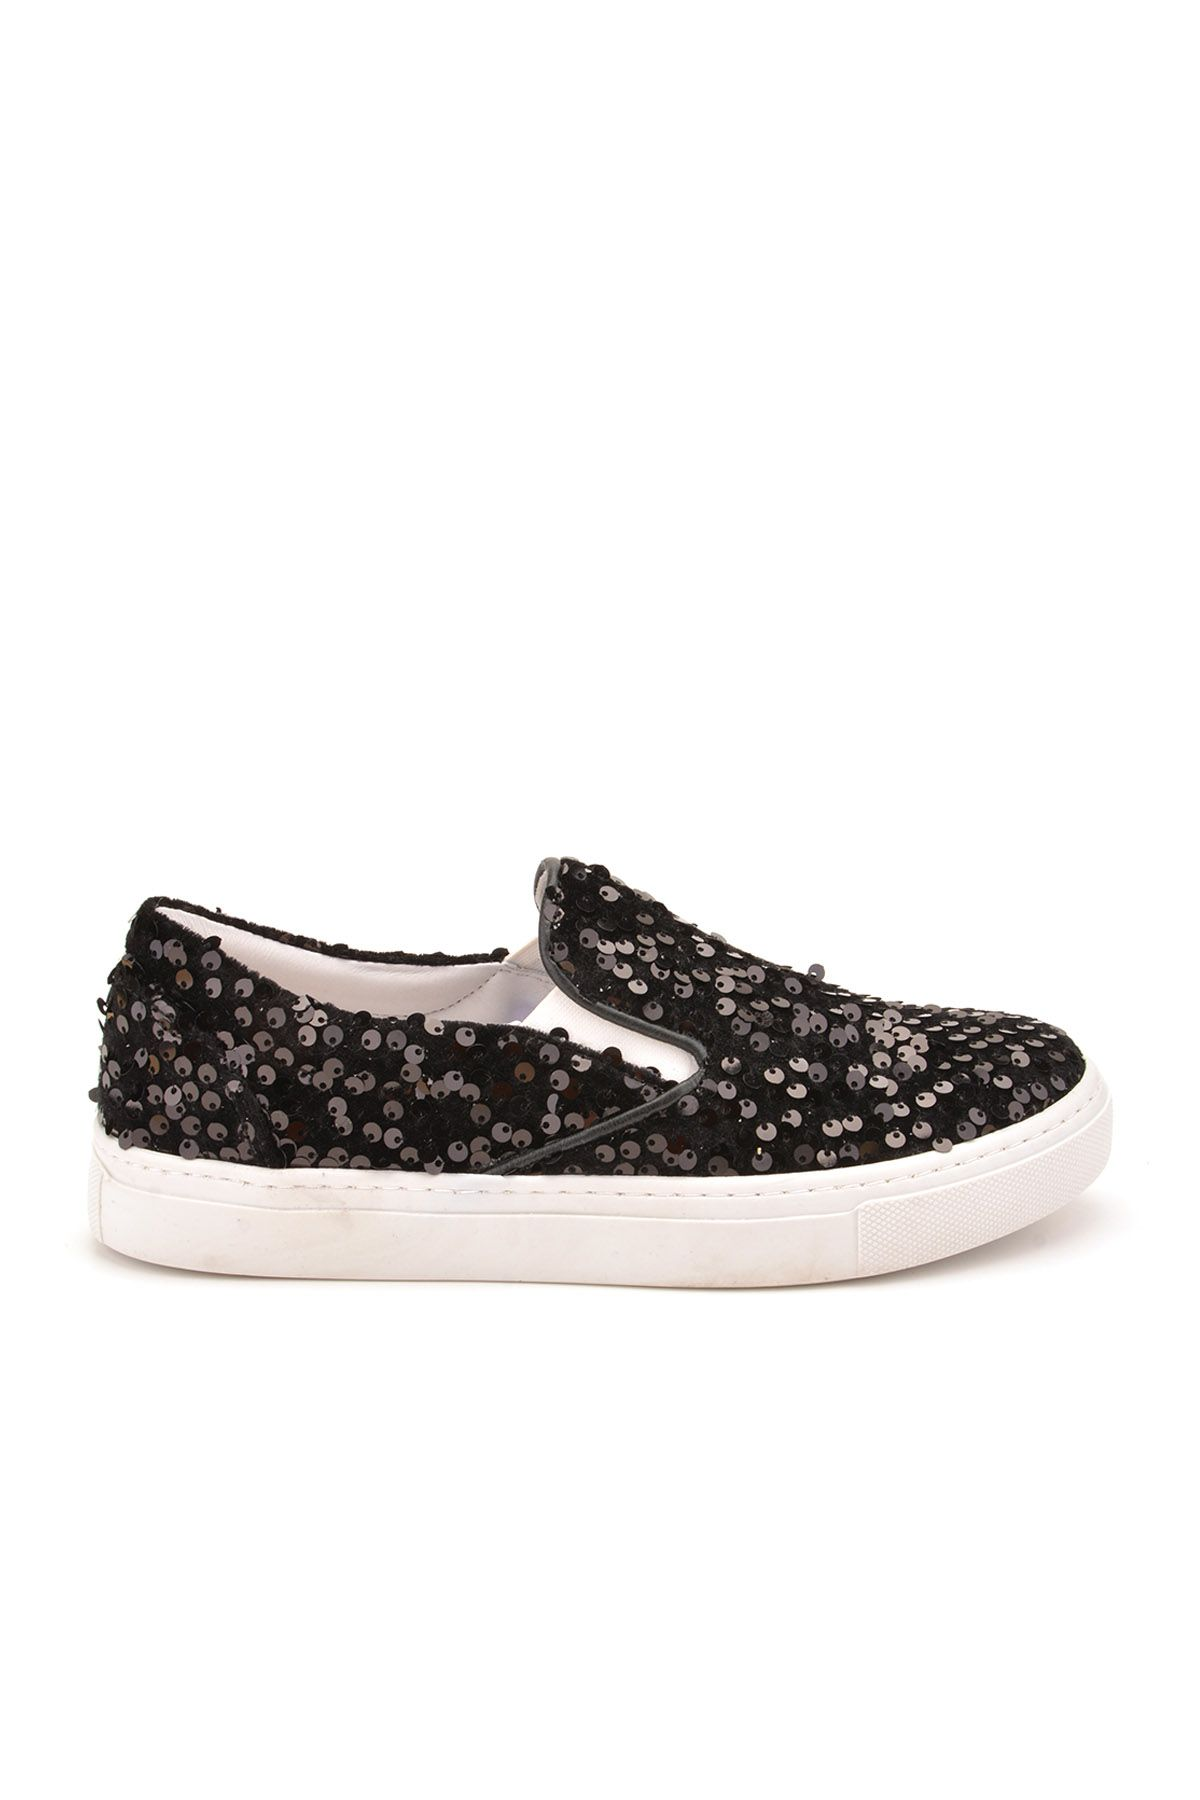 Pegia Sucre Sneakers From Genuine Leather Covered With Sequins Black